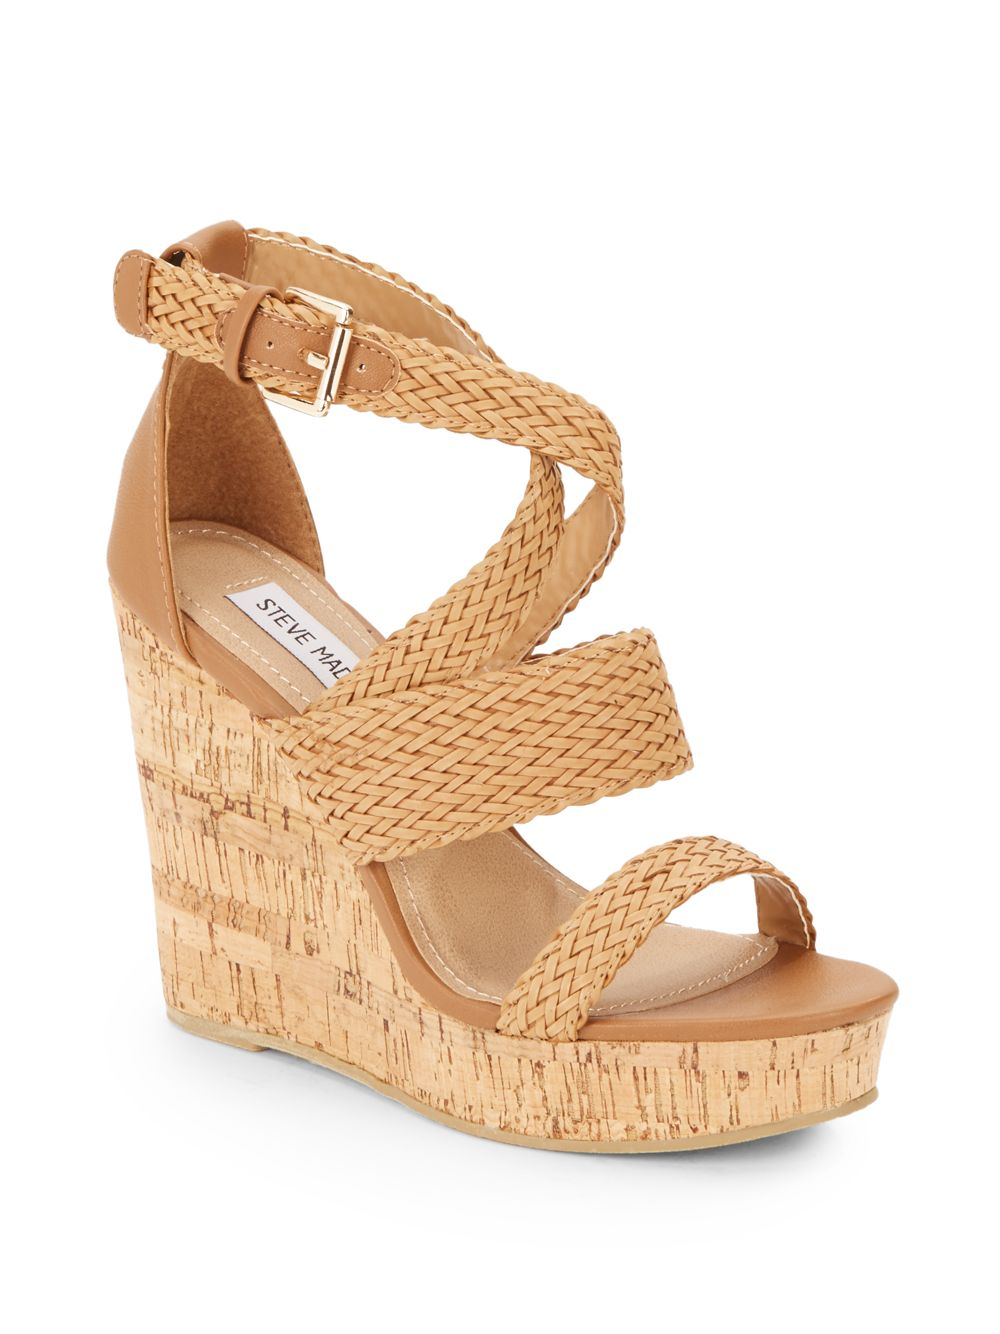 a5d9df86add Lyst - Steve Madden Slippie Braided-Pleather Wedge Sandals in Brown